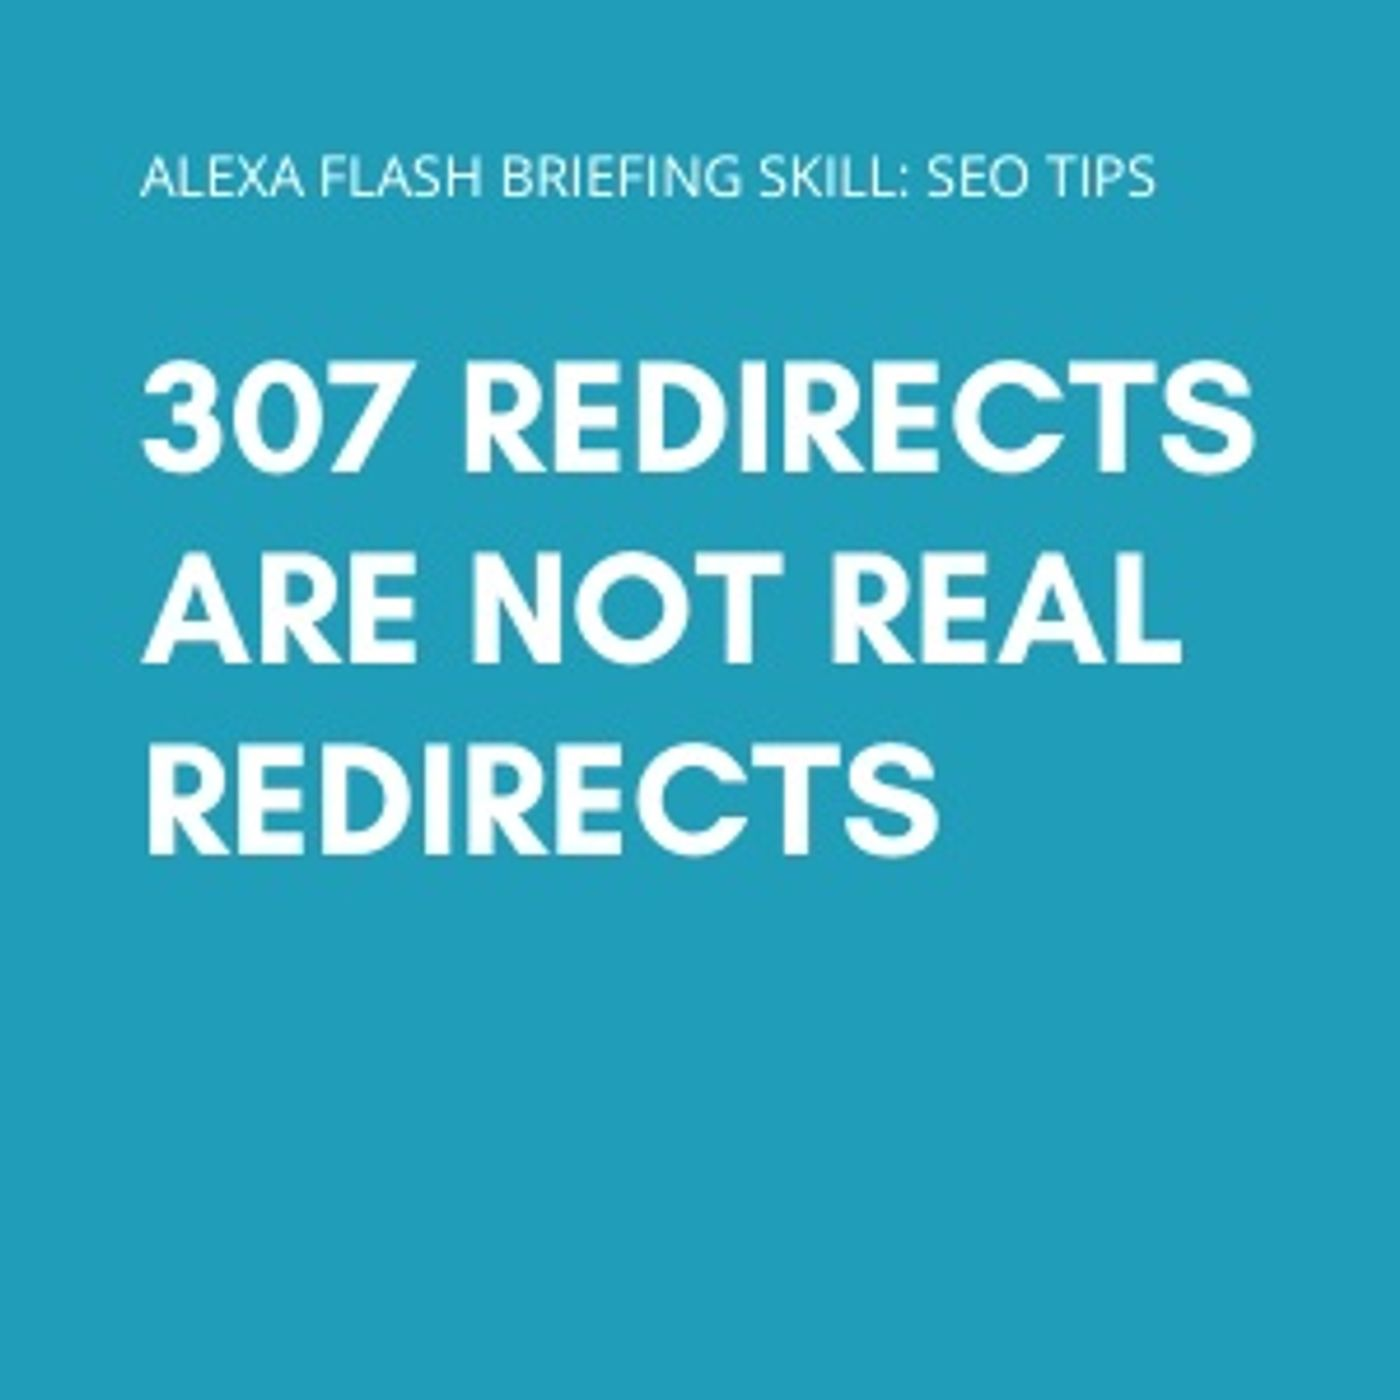 307 Redirects are not real redirects